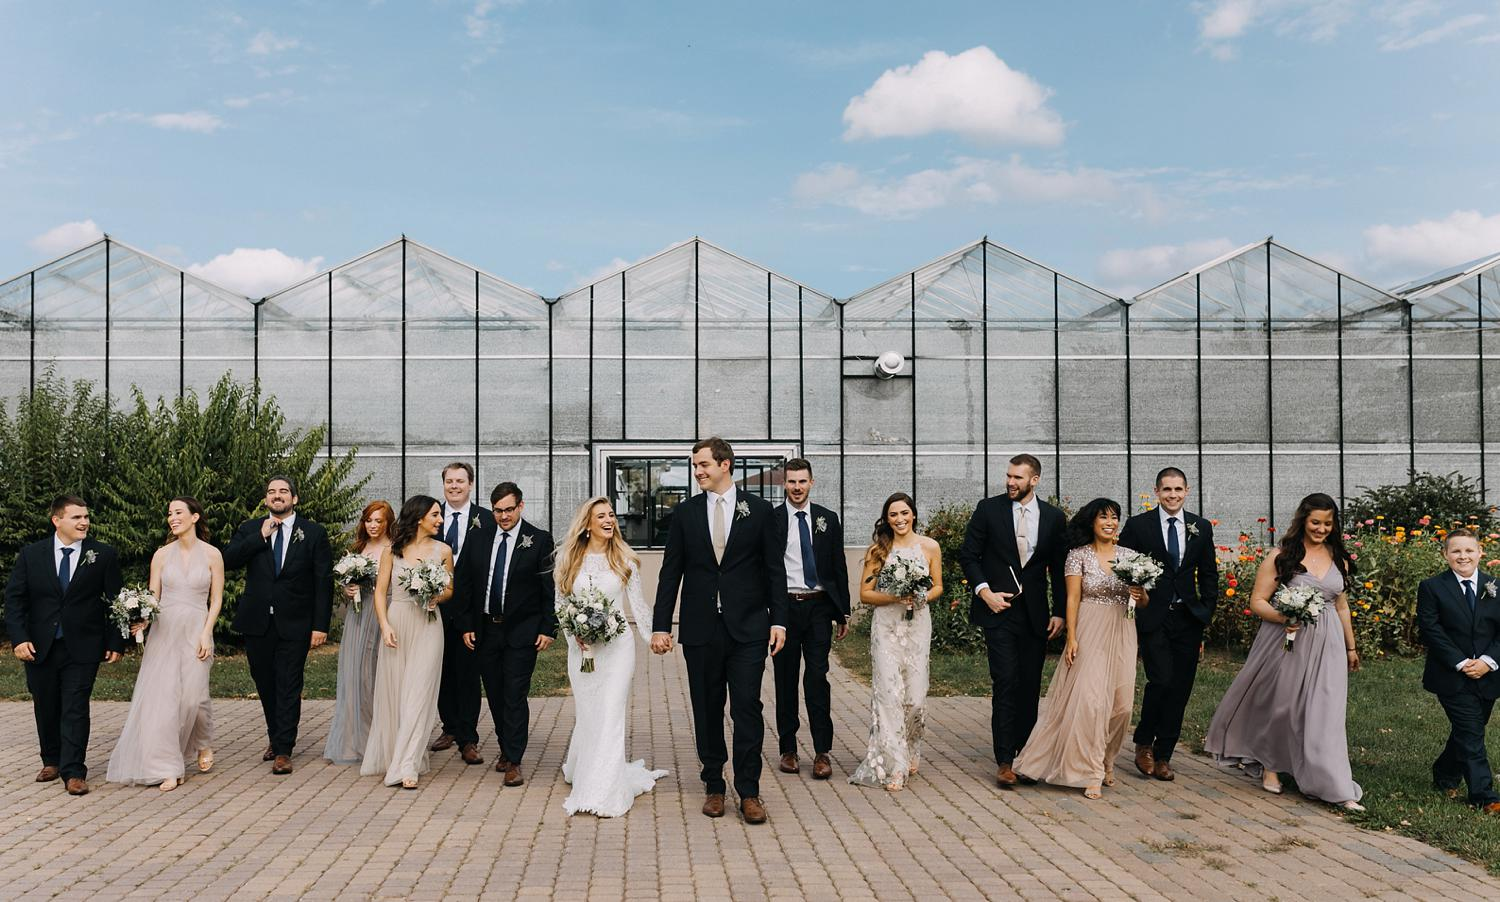 Conservatory Sussex County Fairgrounds Augusta NJ Wedding Photography Steph Massaro Bridal Party Portraits